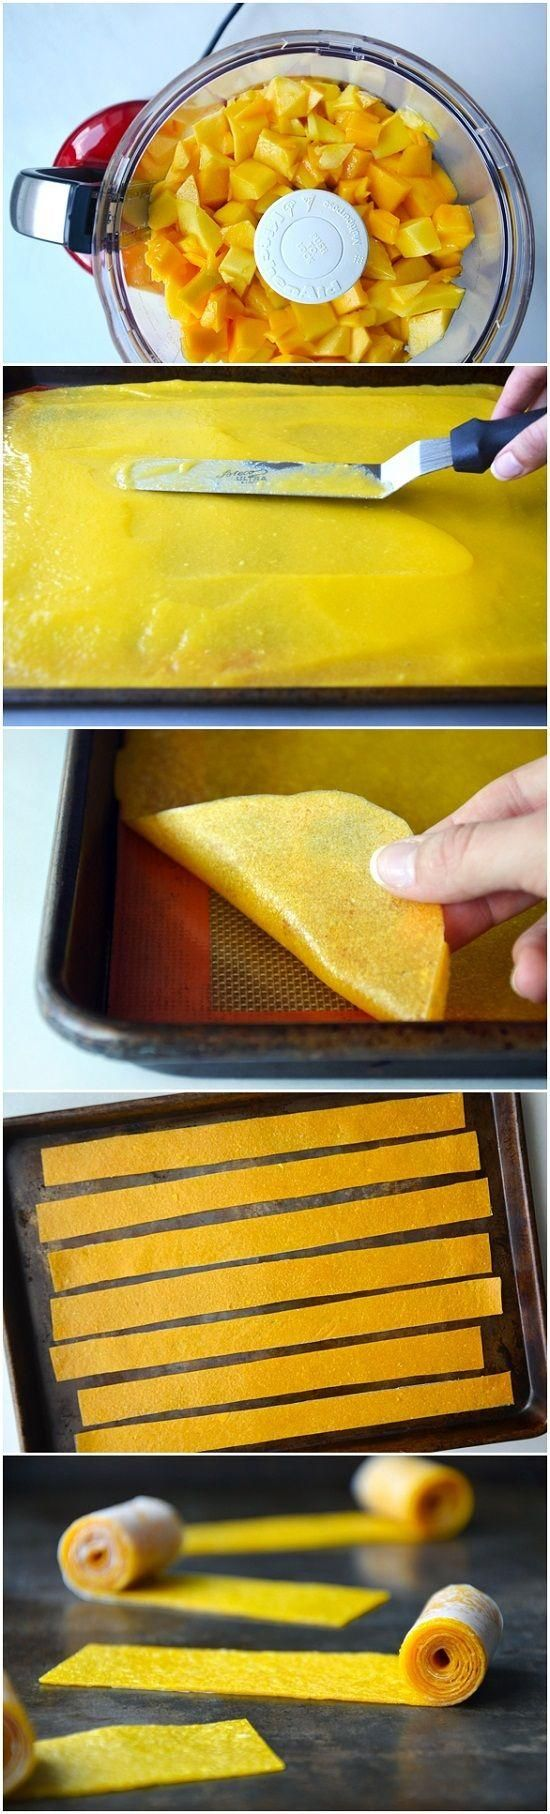 Healthy homemade mango fruit roll ups if i had a food processor healthy homemade mango fruit roll ups if i had a food processor forumfinder Gallery